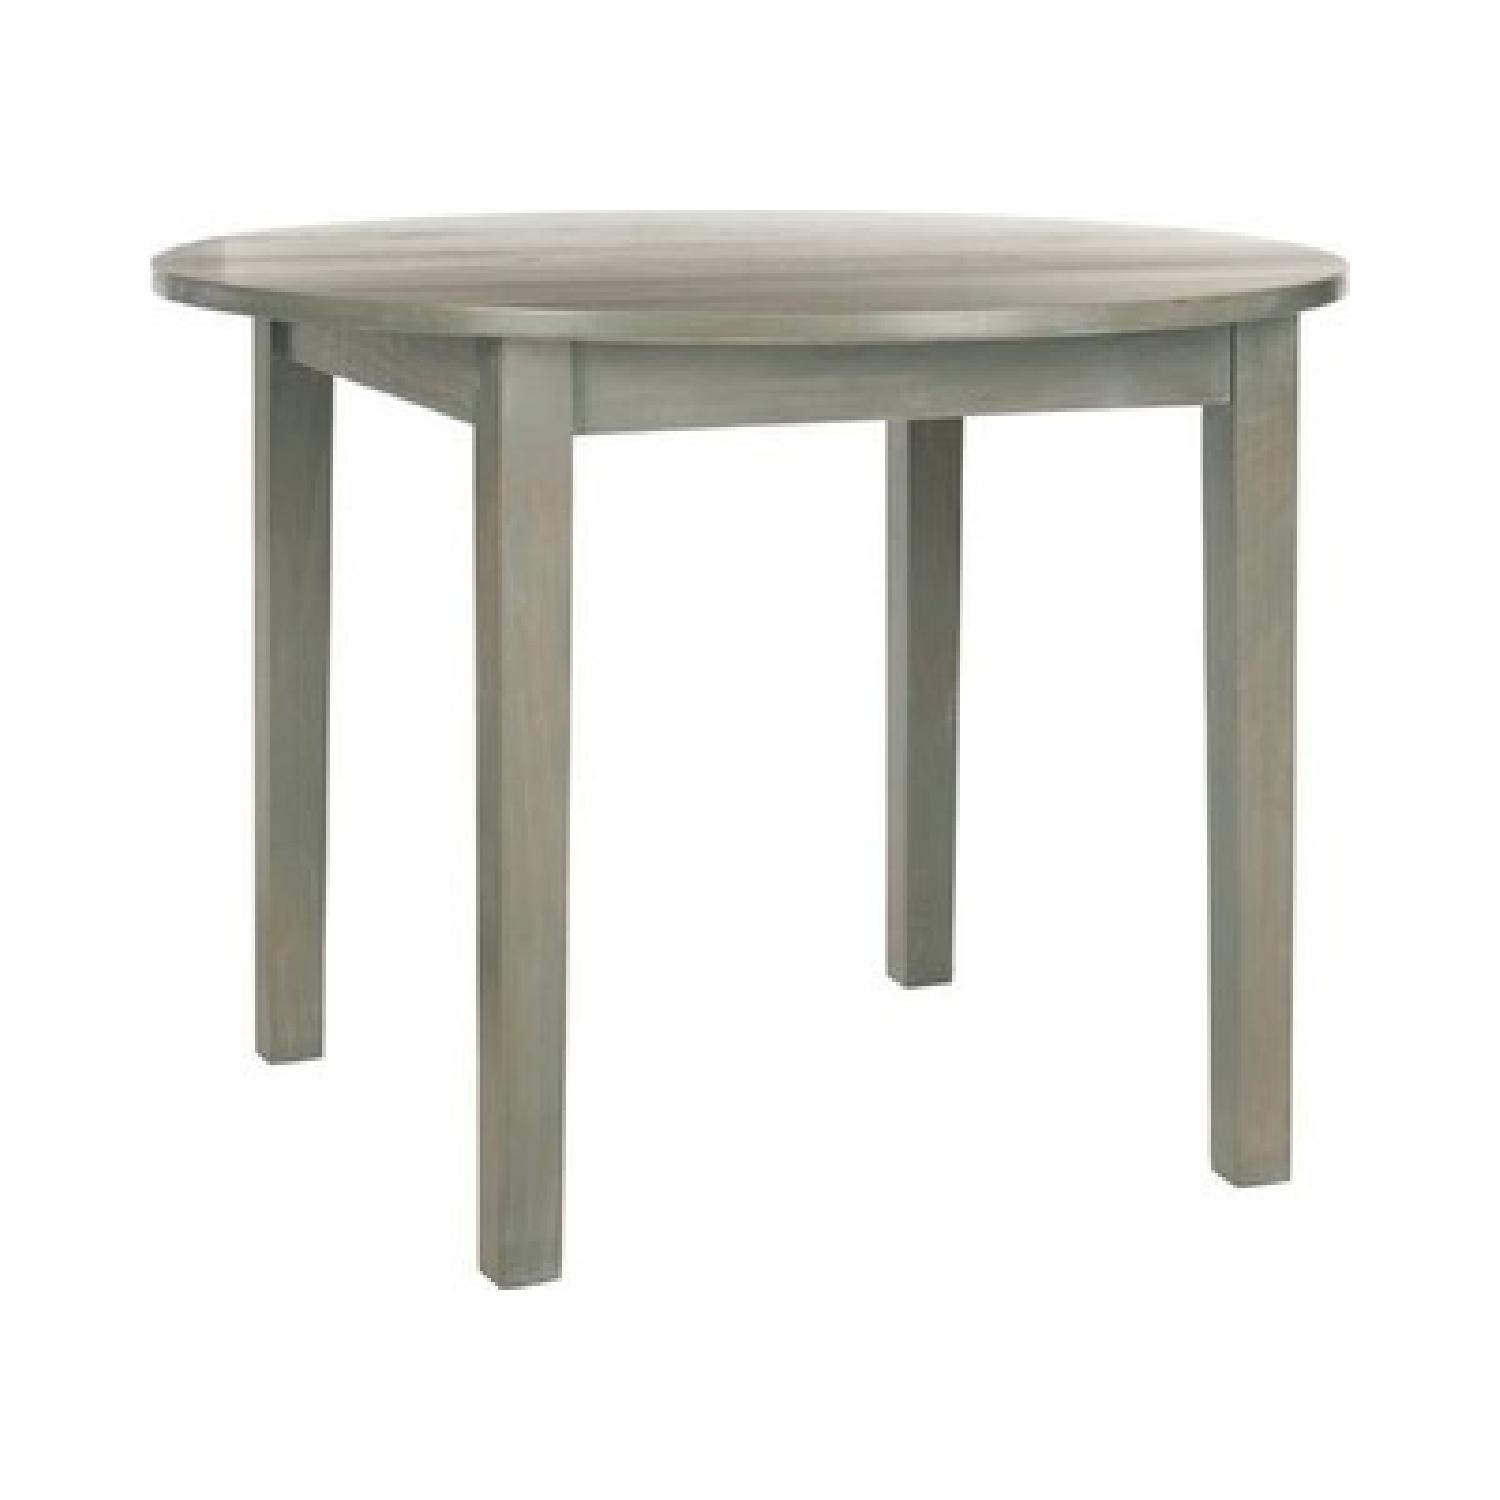 Safavieh Holly French Dining Table w/ 2 Chairs - image-6